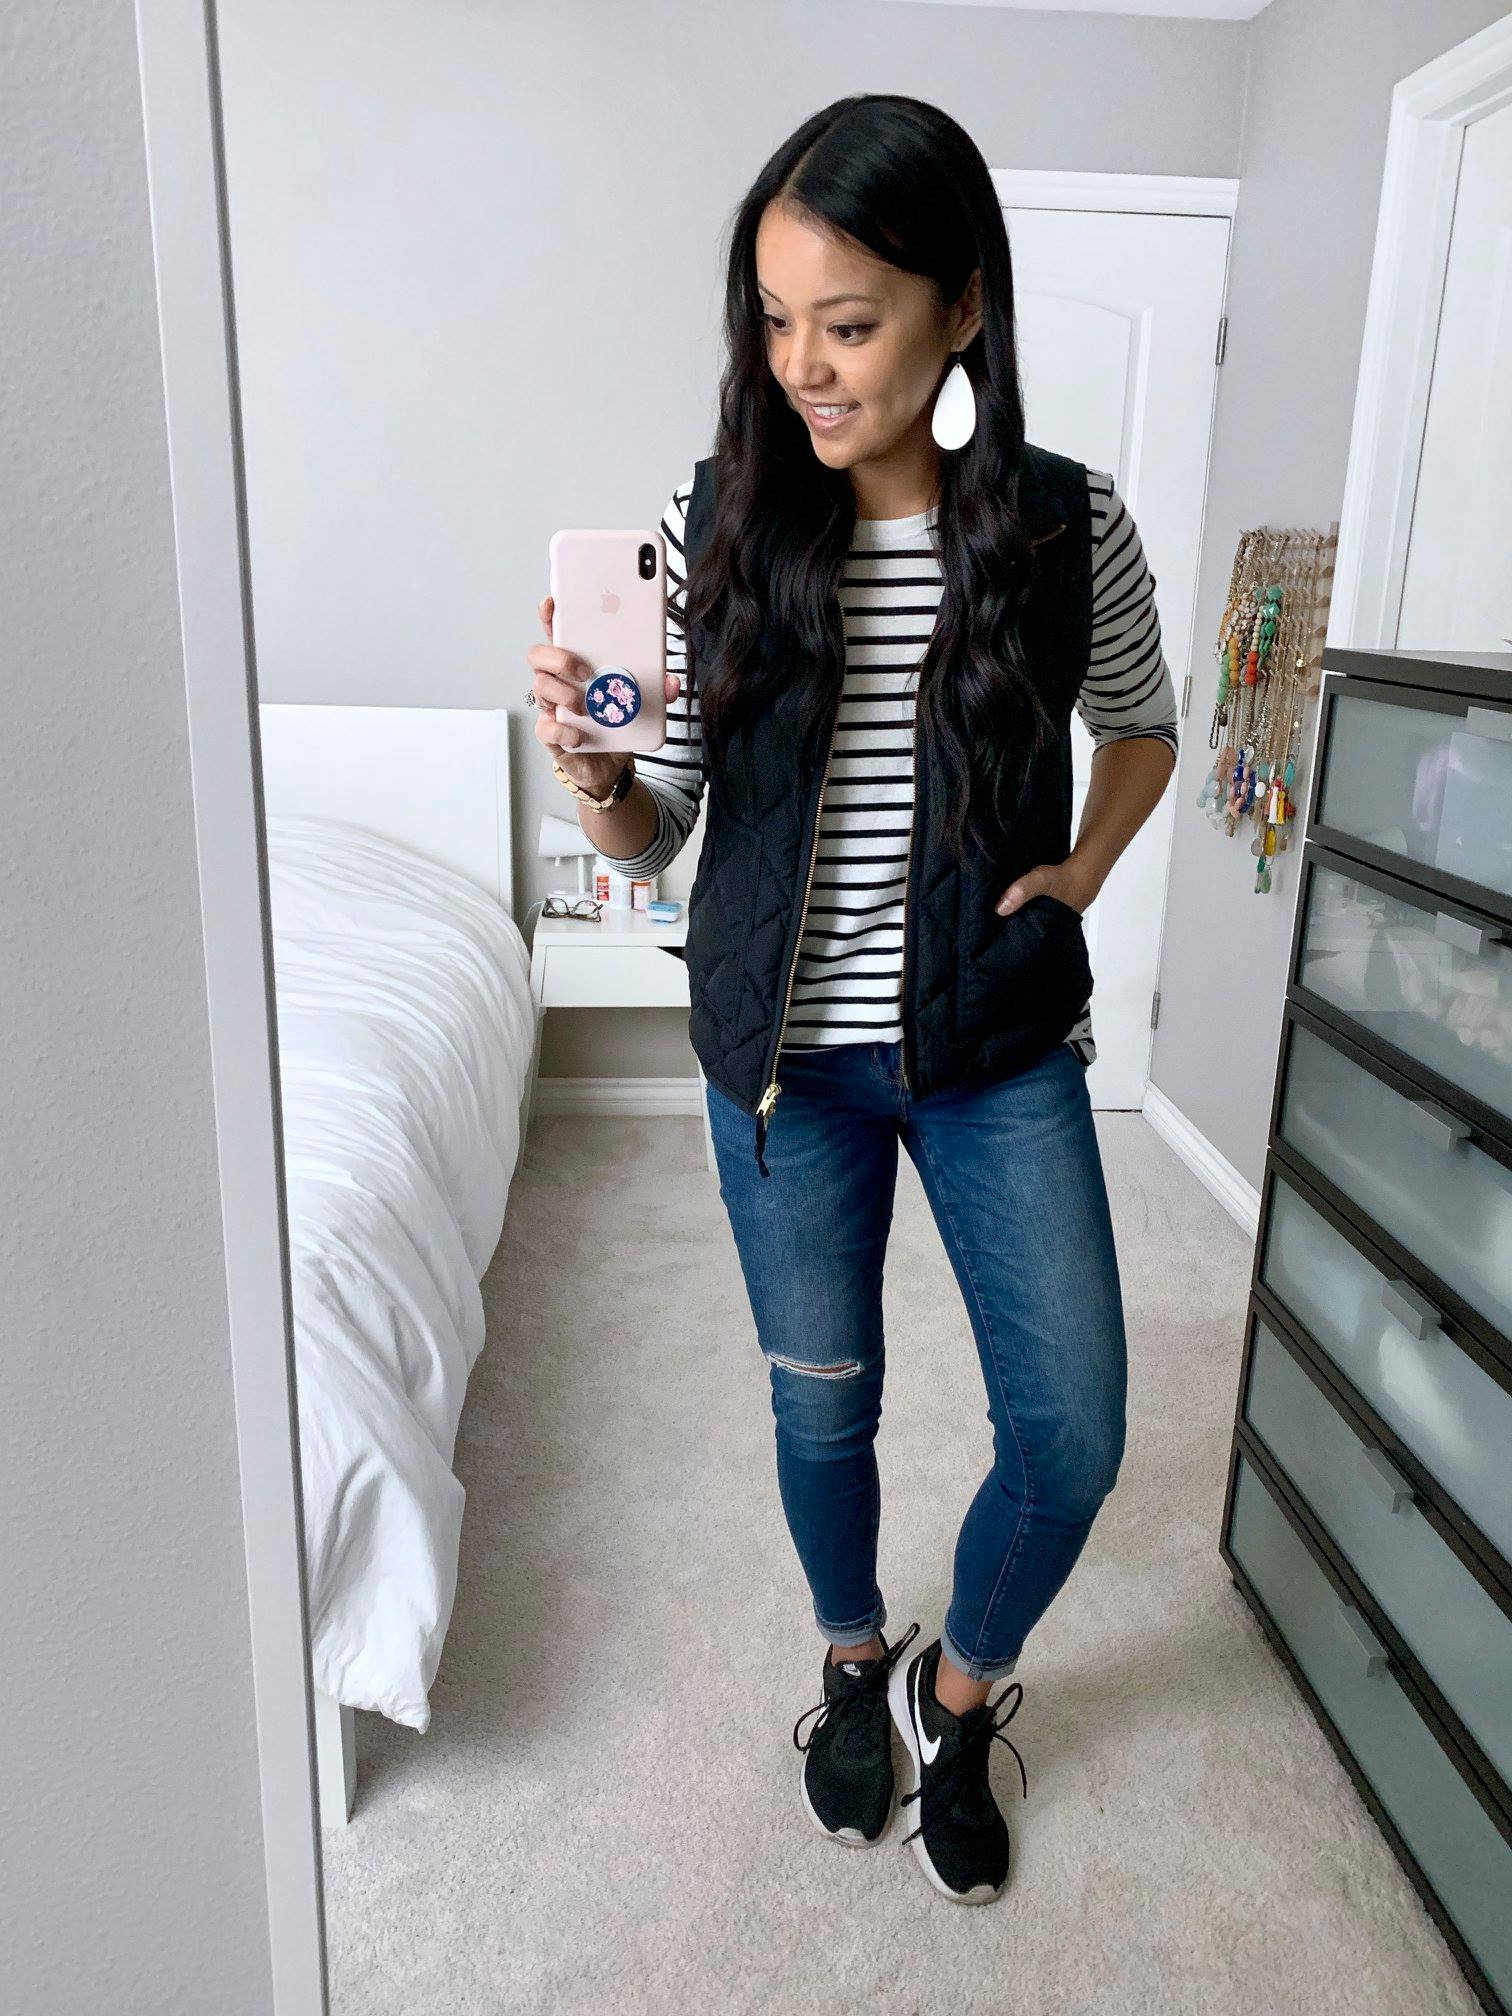 841fb59b75 Black Vest + Striped Top + Distressed Jeans + Black Sneakers + White  Earrings